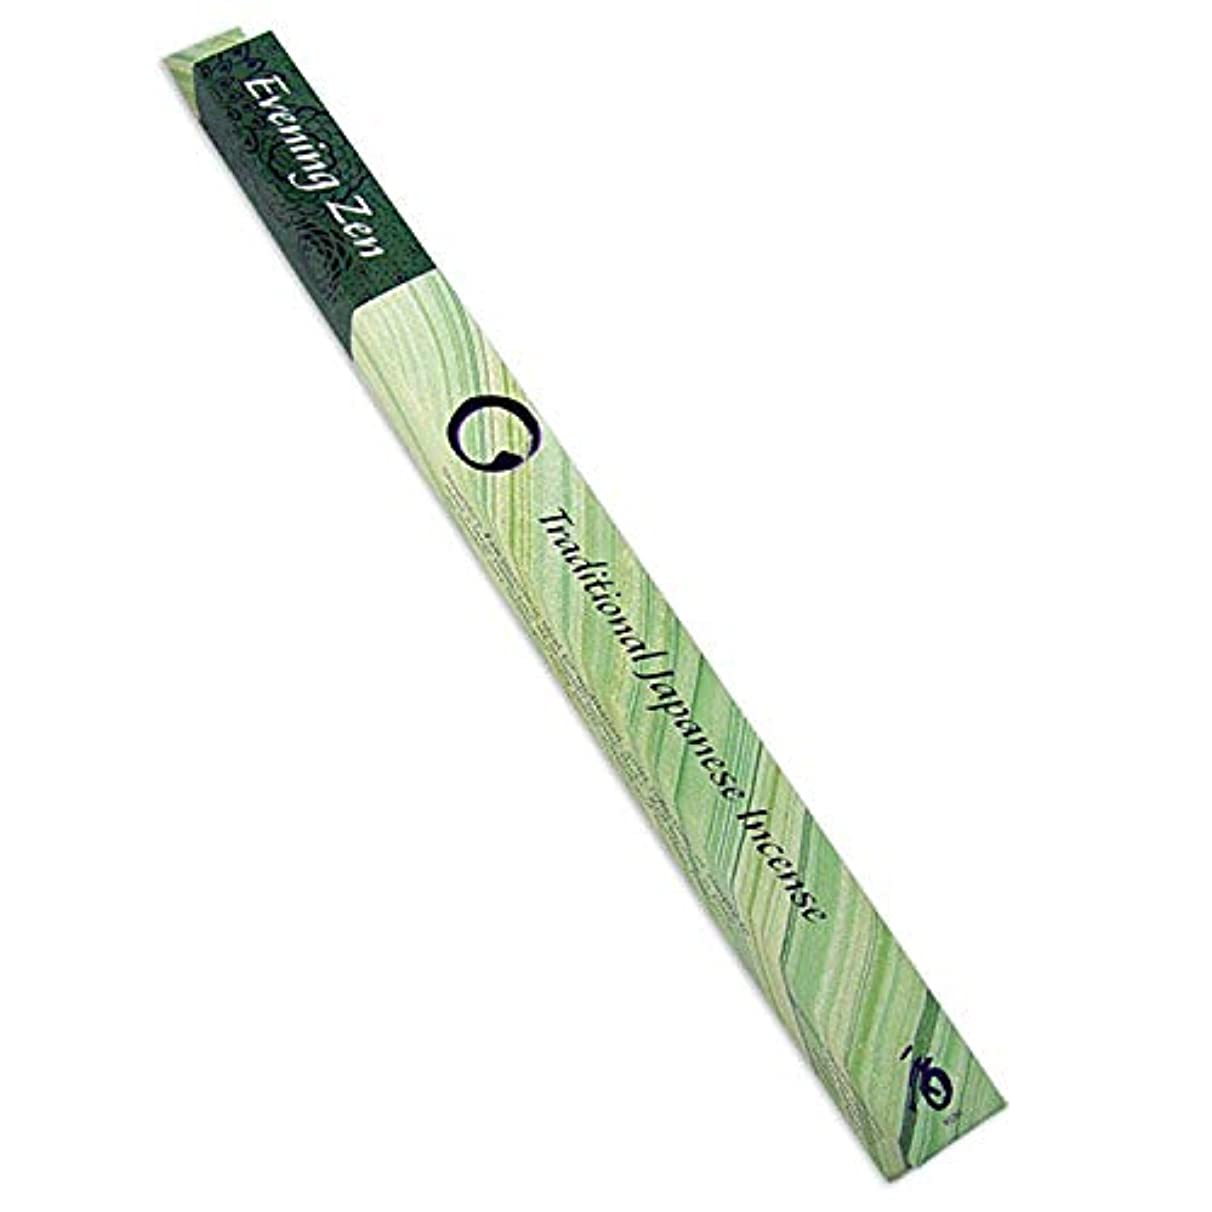 聡明洪水賃金Shoyeido – Zen Incense Morning Zen 30 Stick(s) グリーン 14323